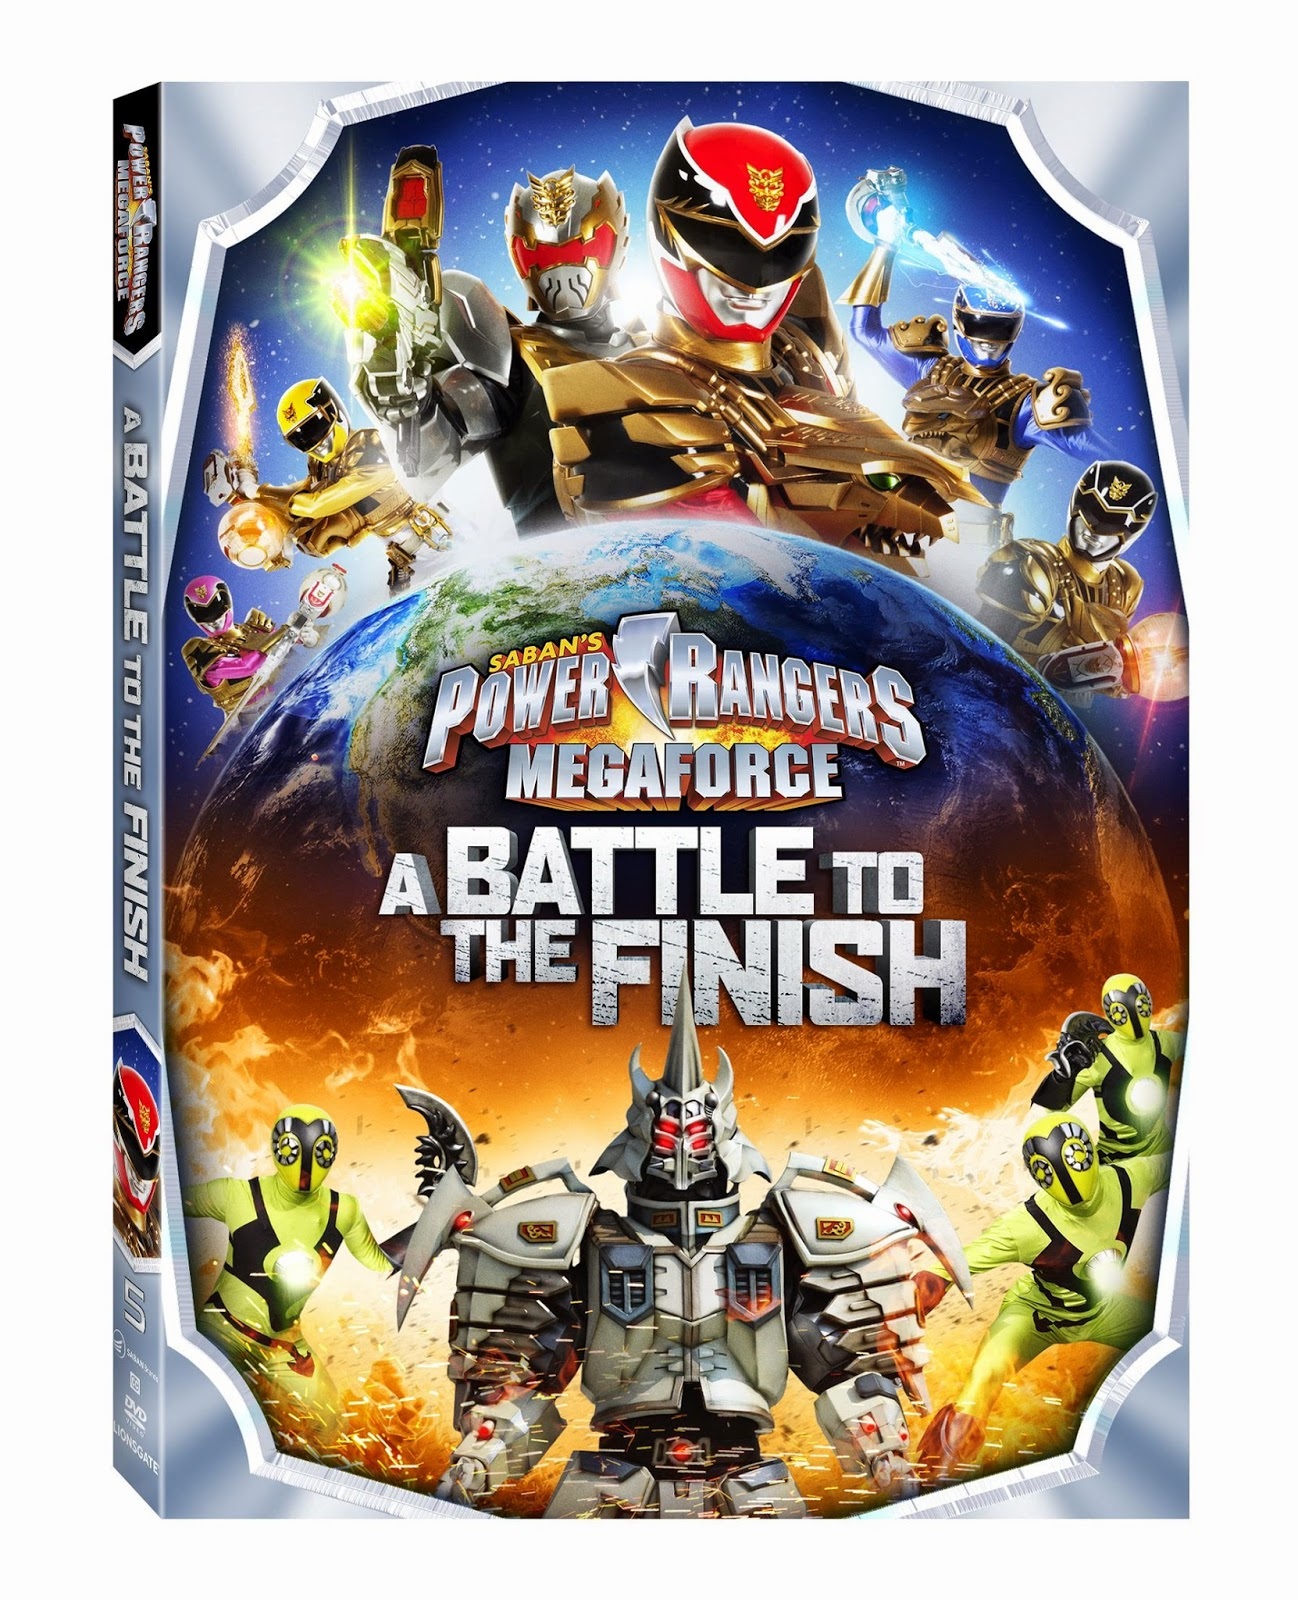 DVD Review - Power Rangers Megaforce: A Battle to the Finish